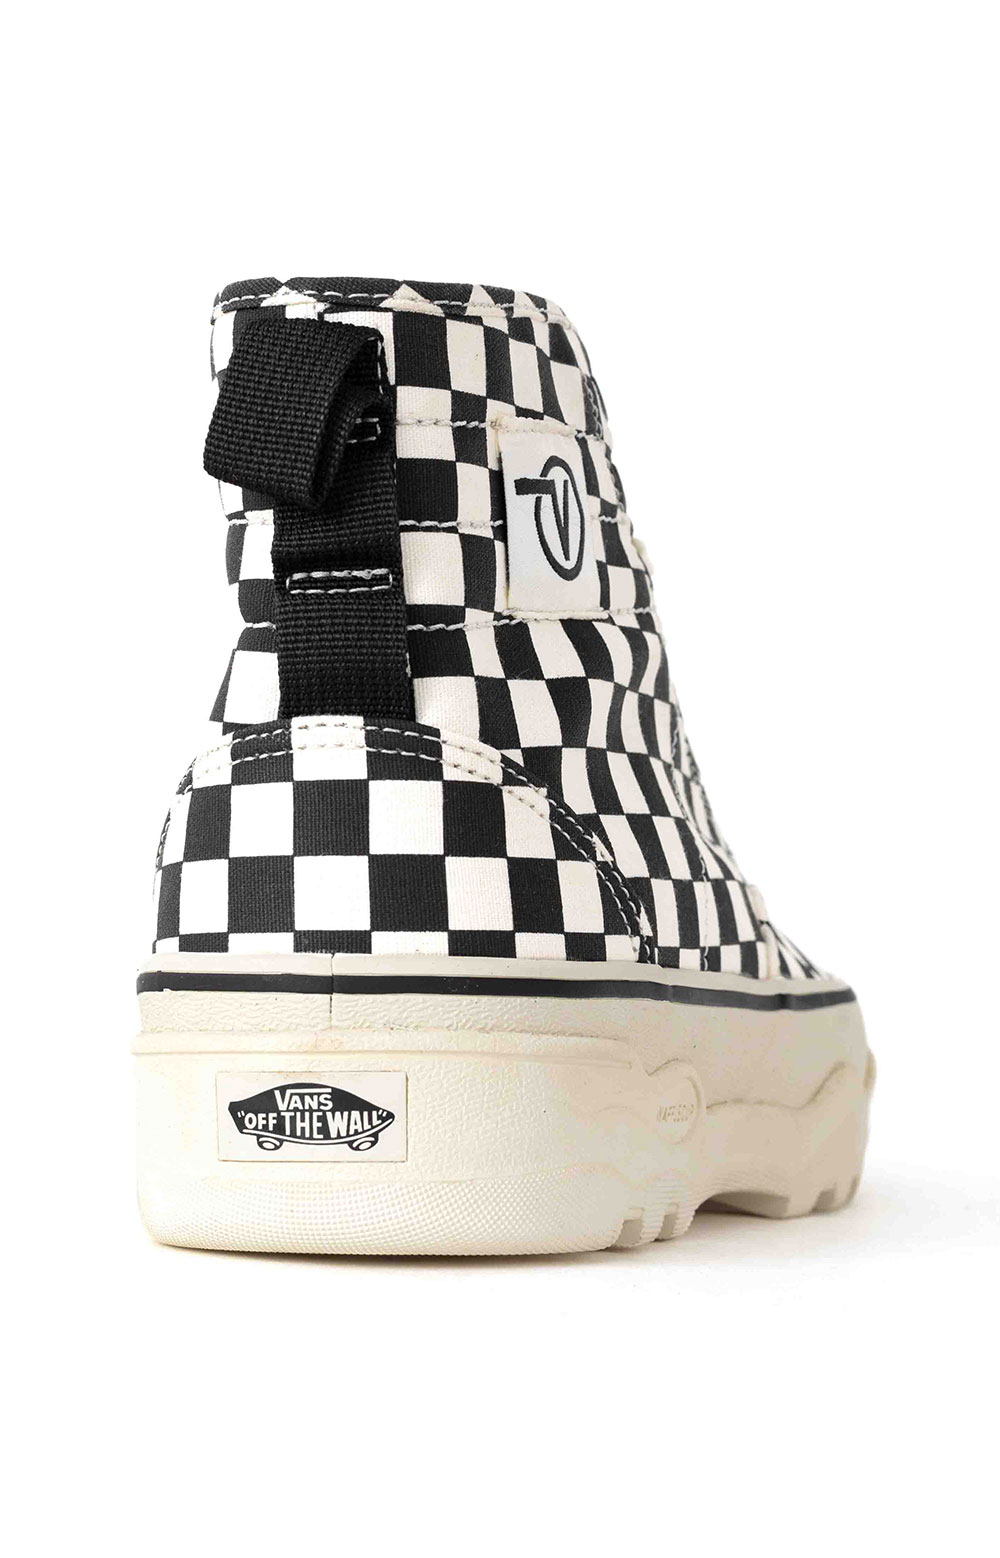 (4P3kTUY) Canvas Sentry WC Shoe - Checkerboard 5